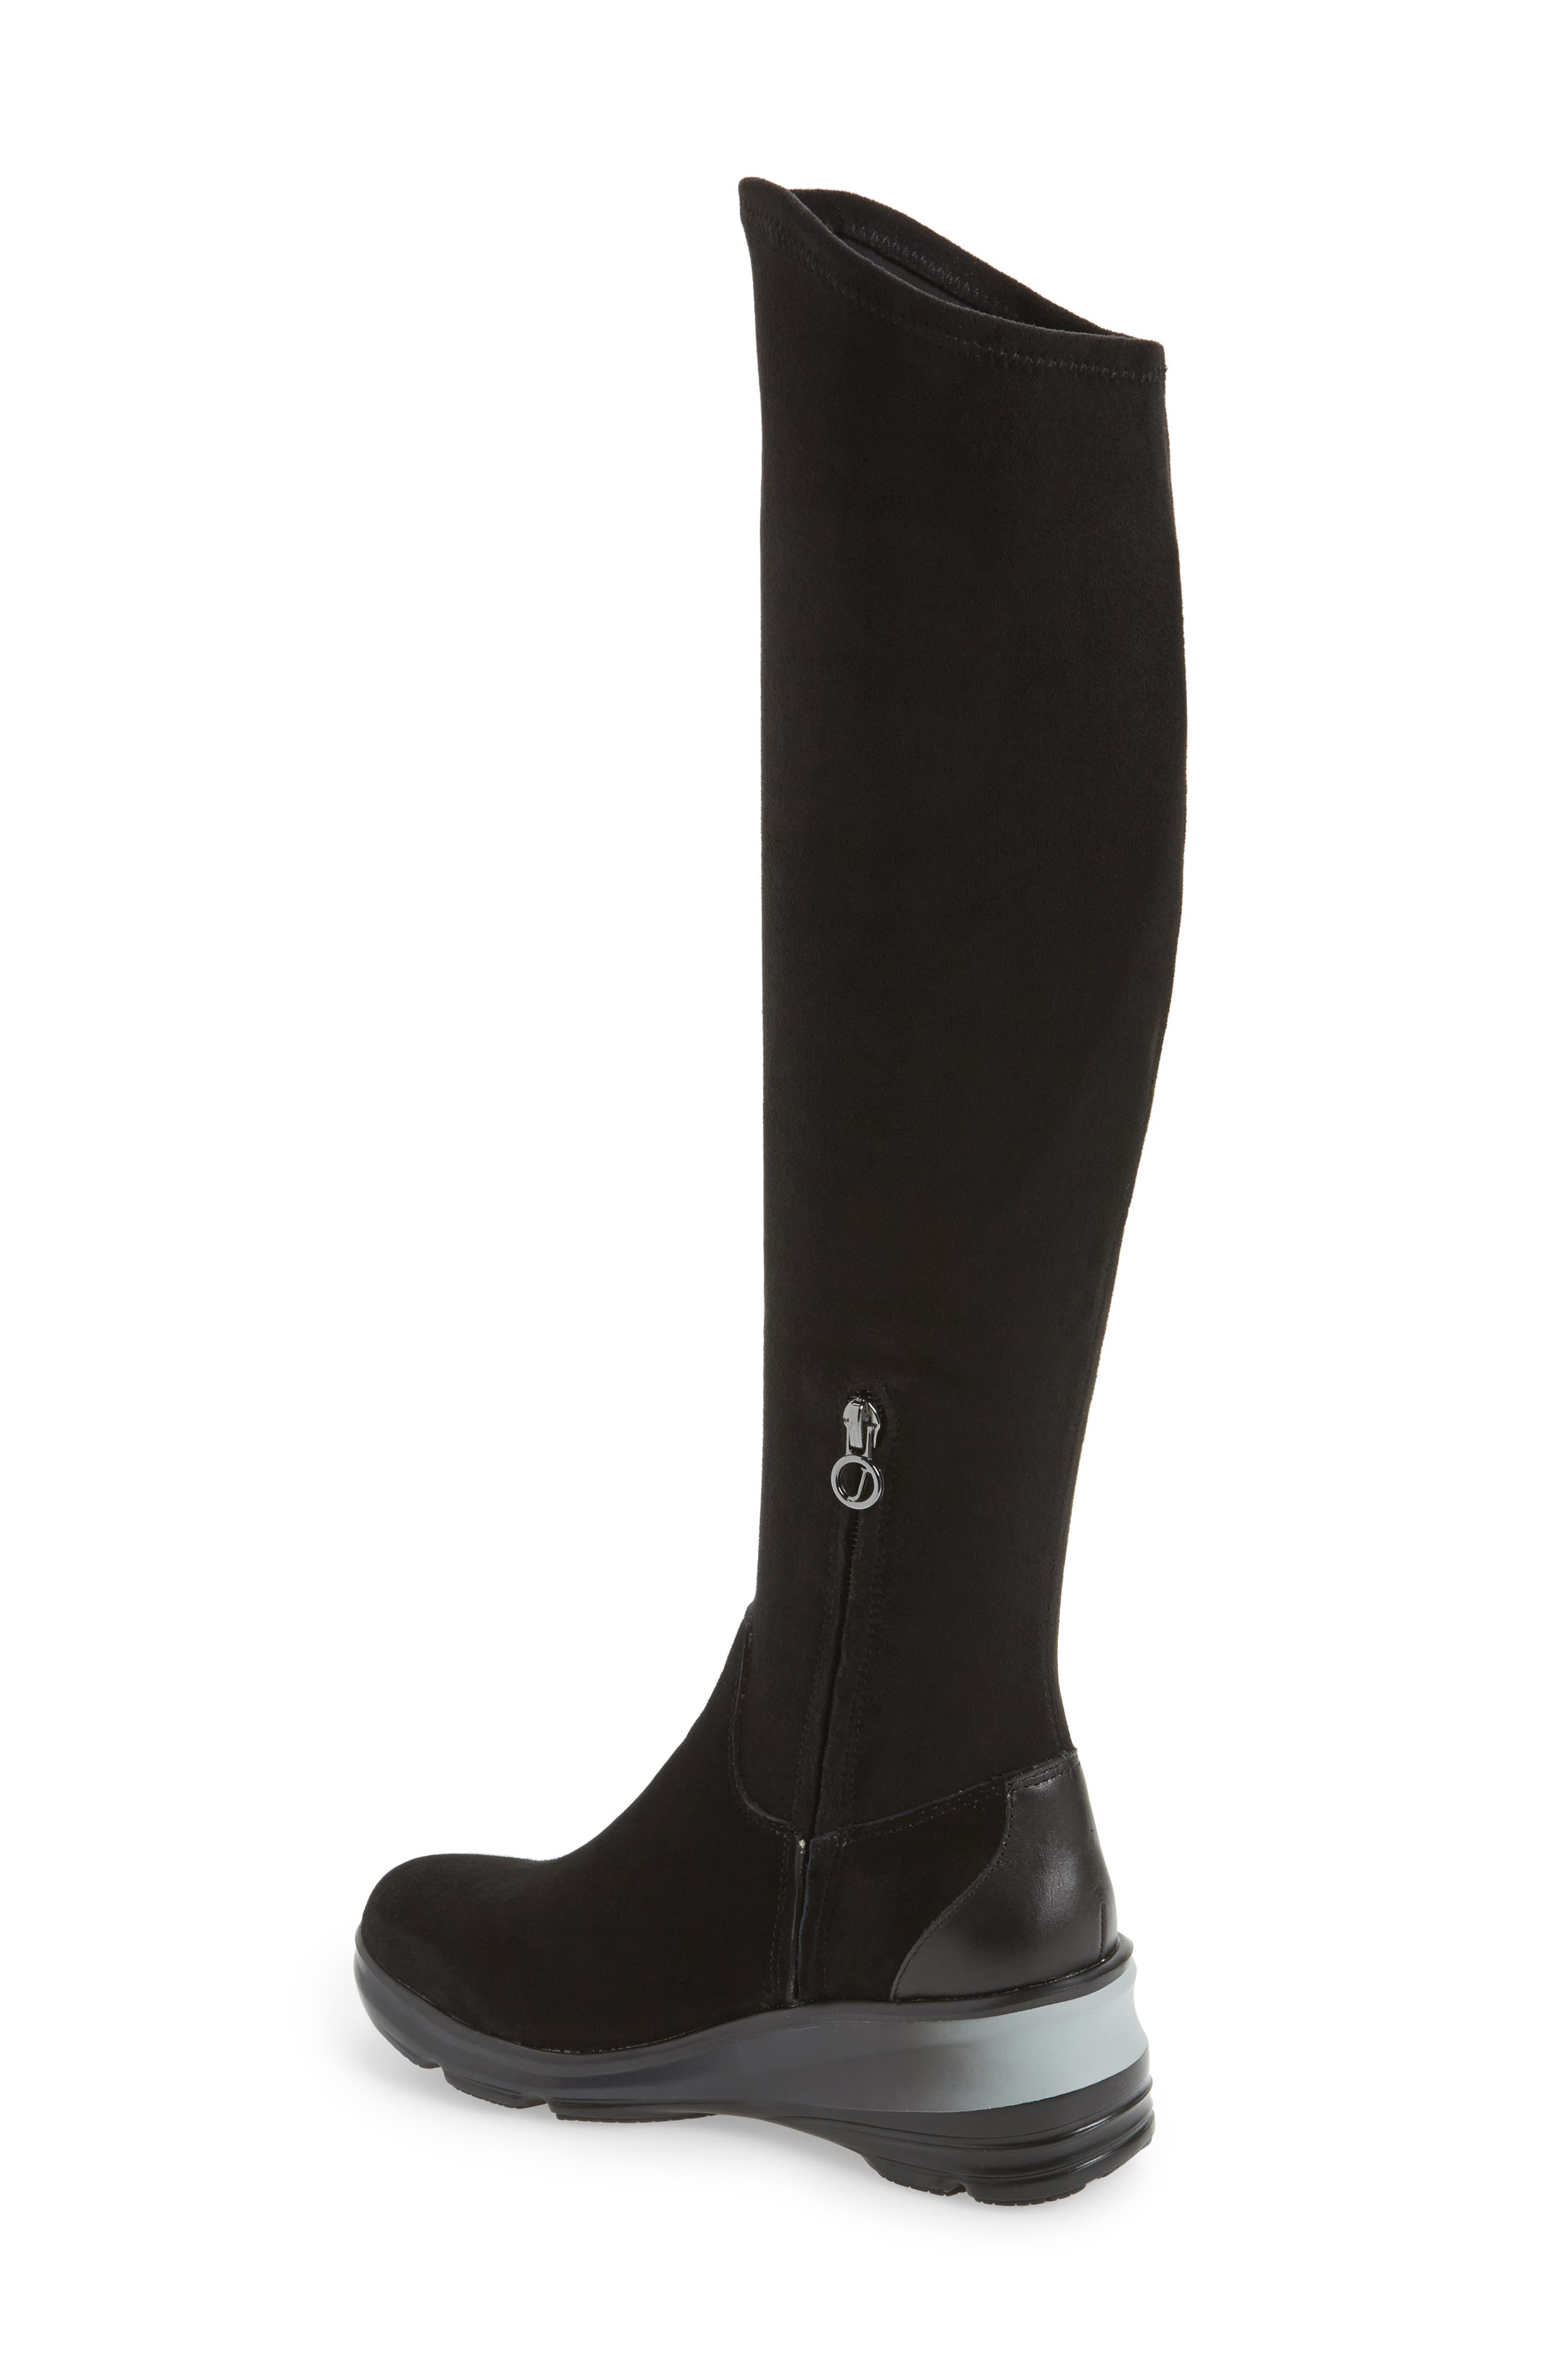 Kendra Over the Knee Water-Resistant Boot,                             Alternate thumbnail 2, color,                             001